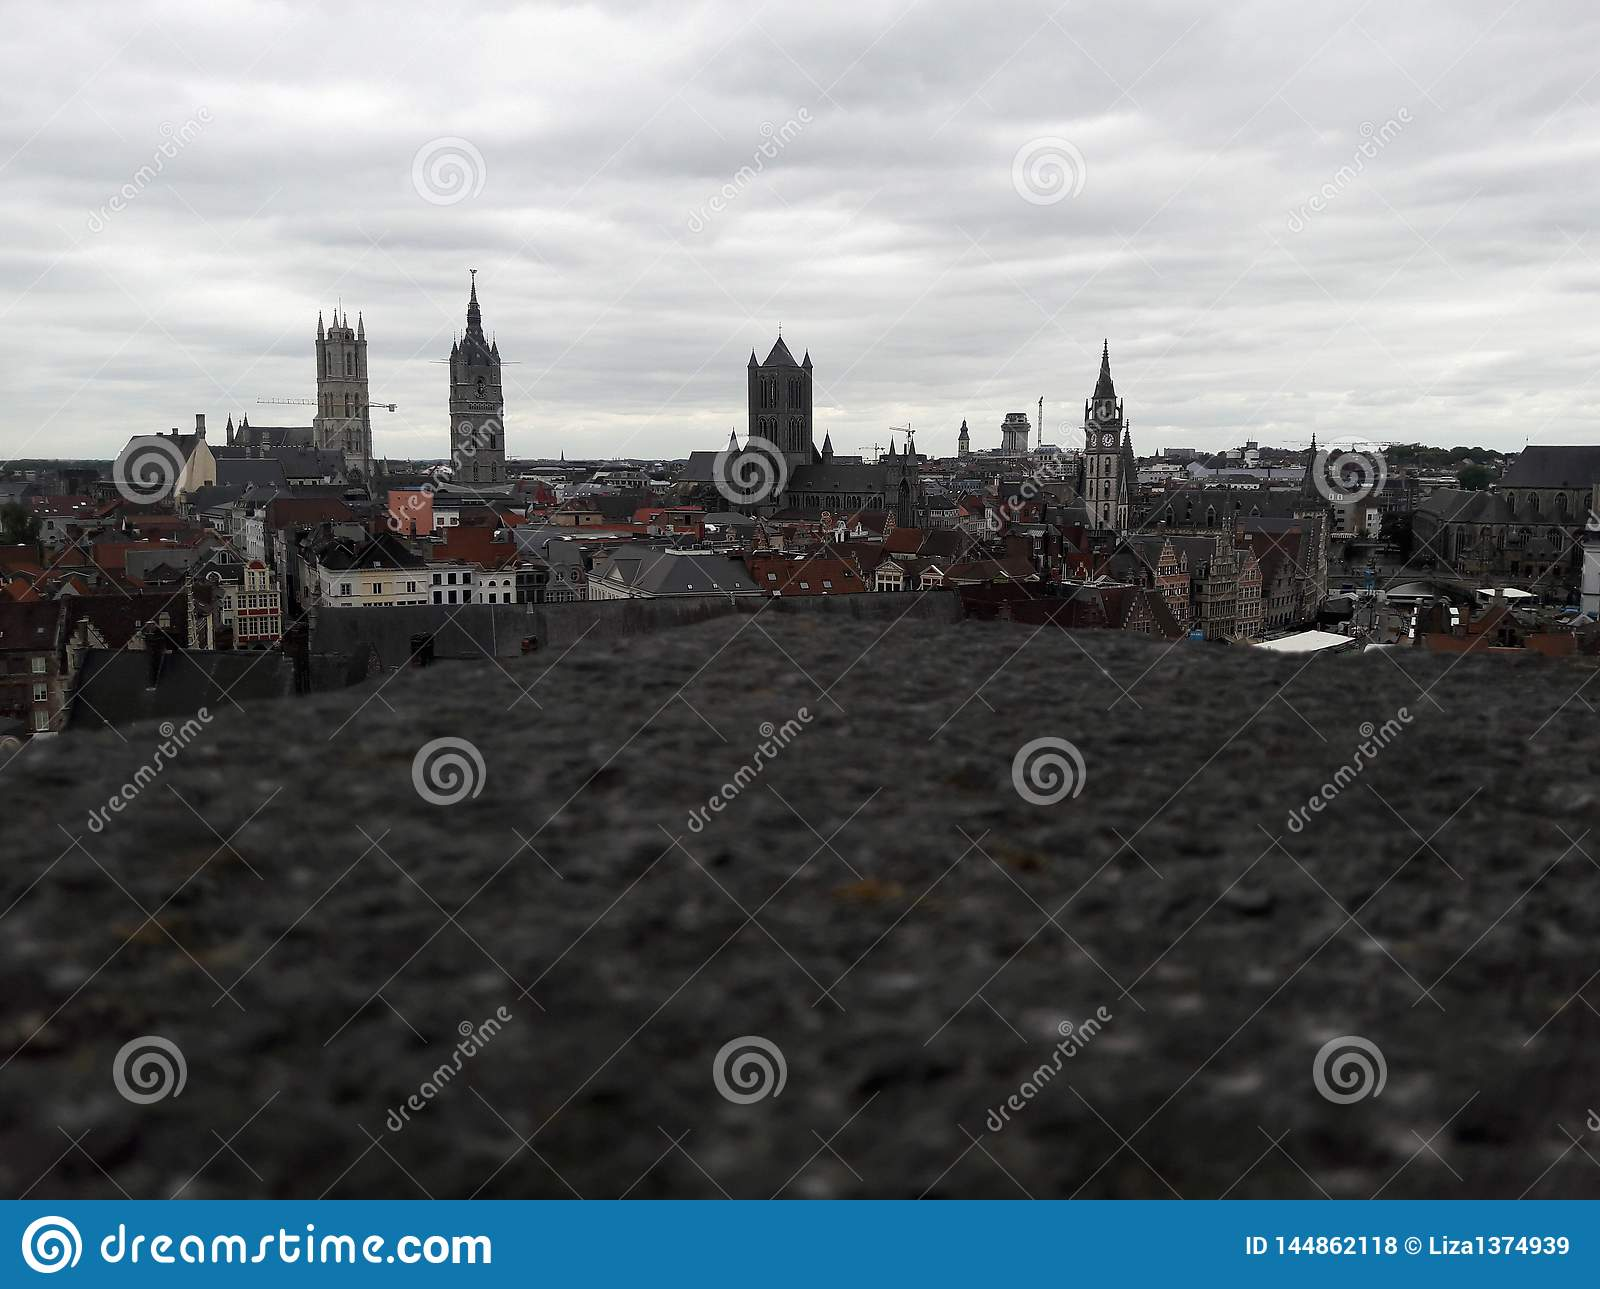 View of the old city from the roof of the Ghent castle. Panorama